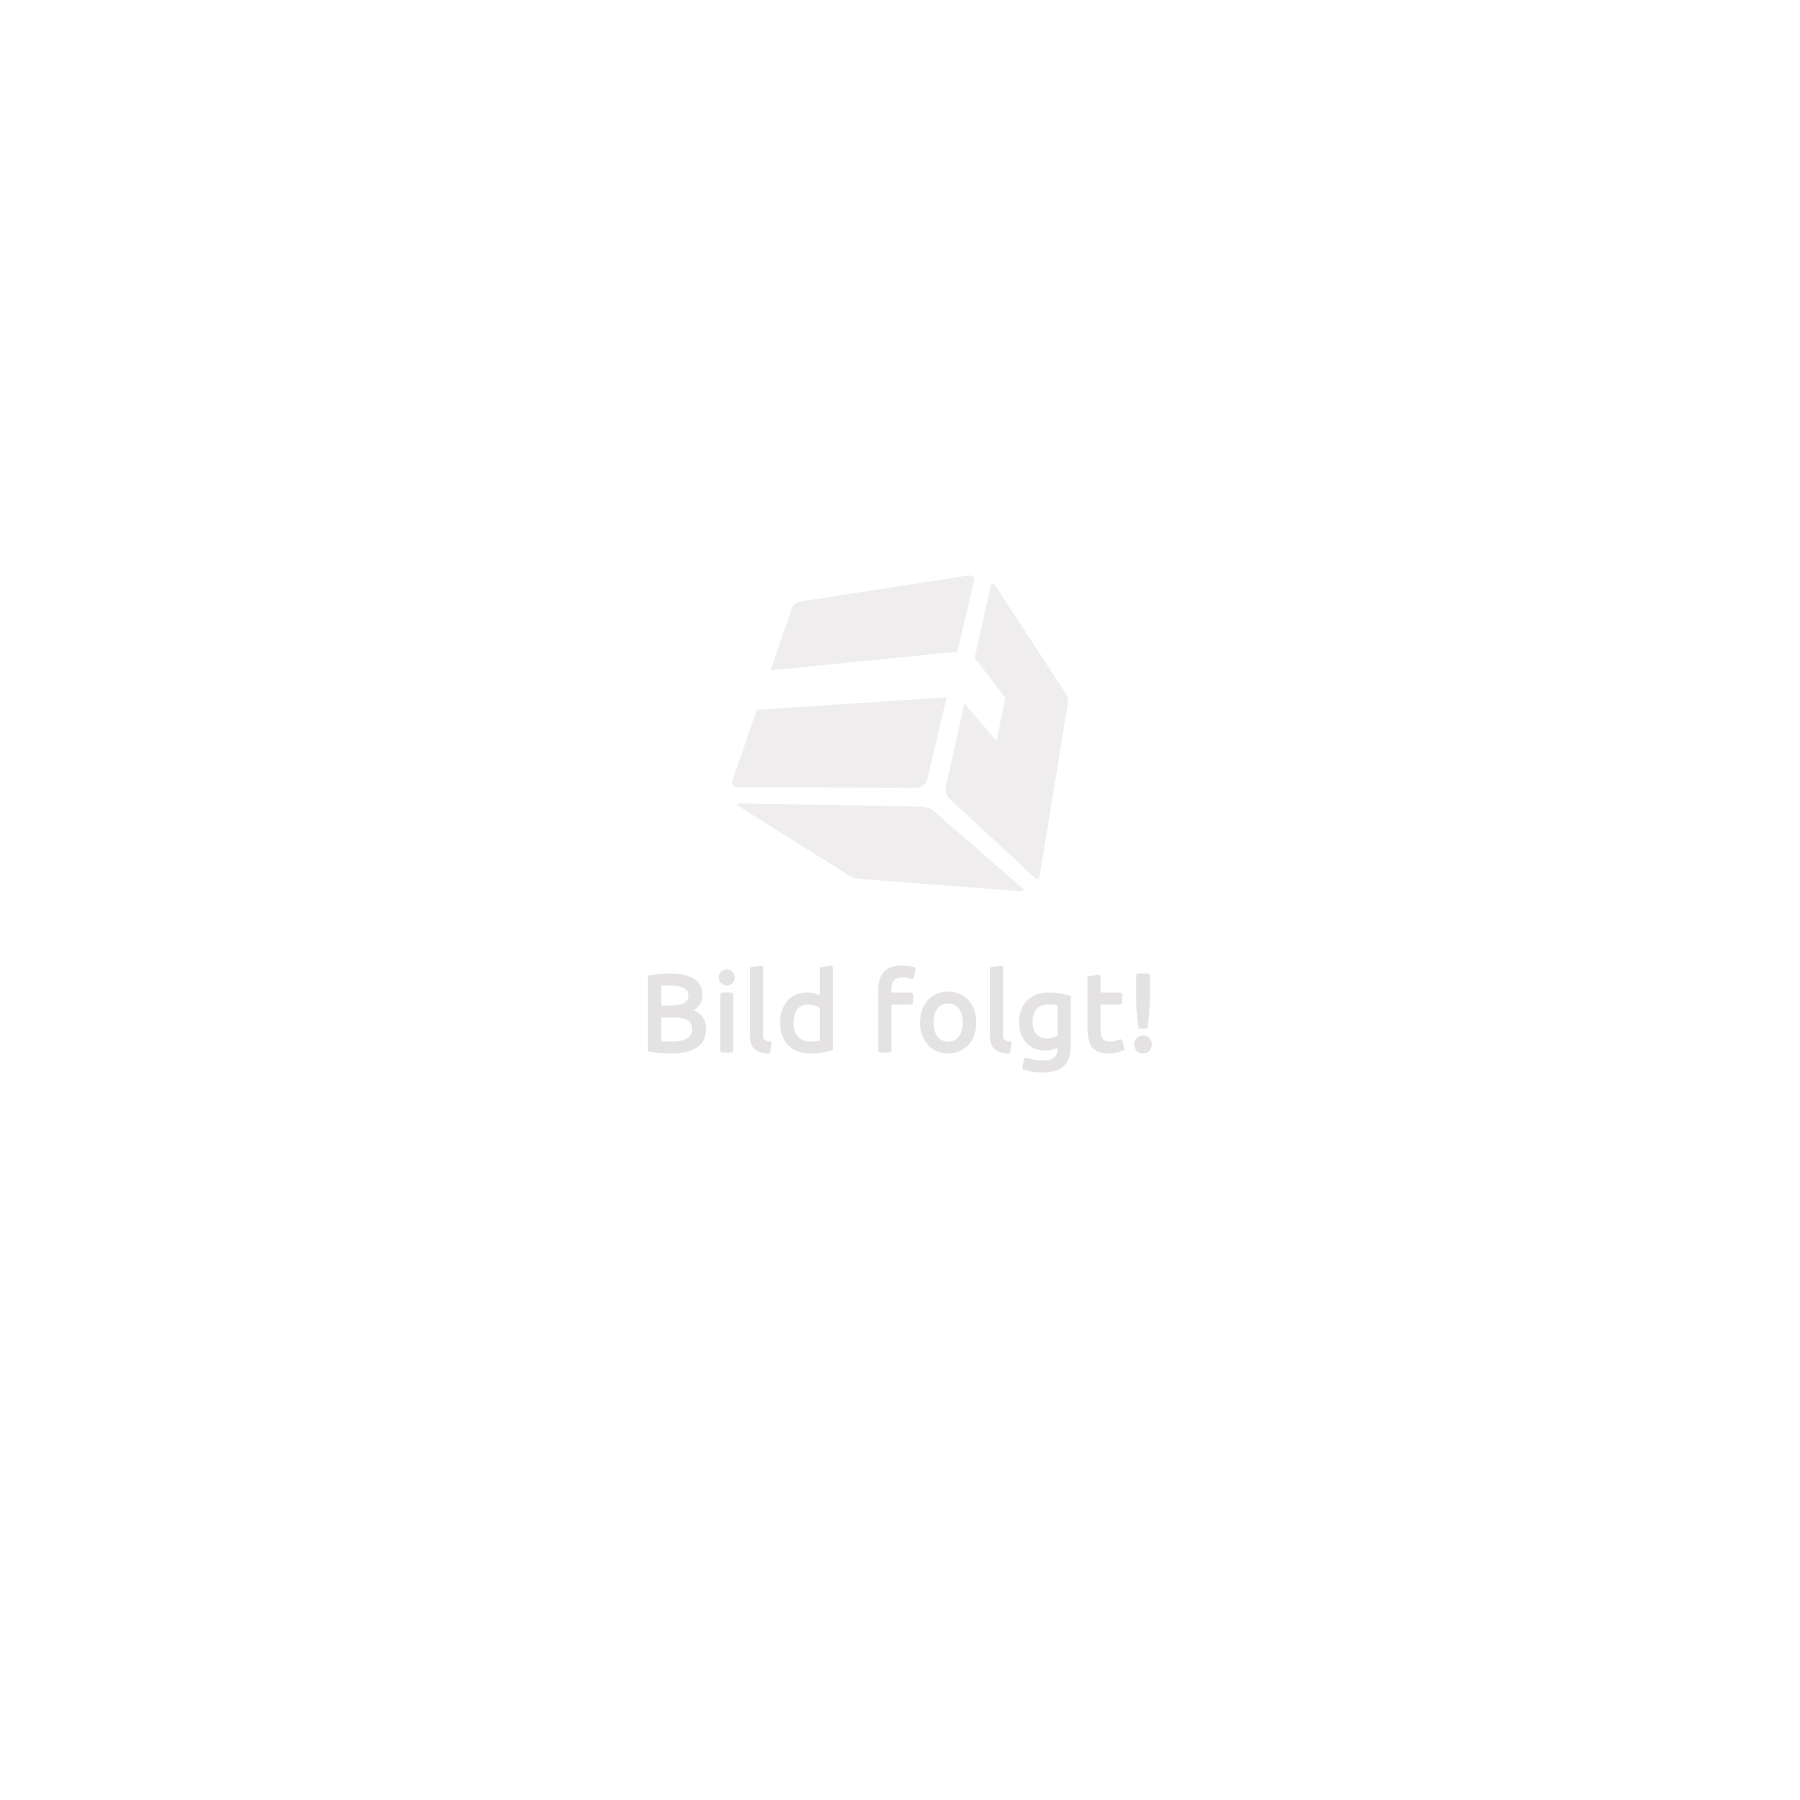 LED strip with motion detector